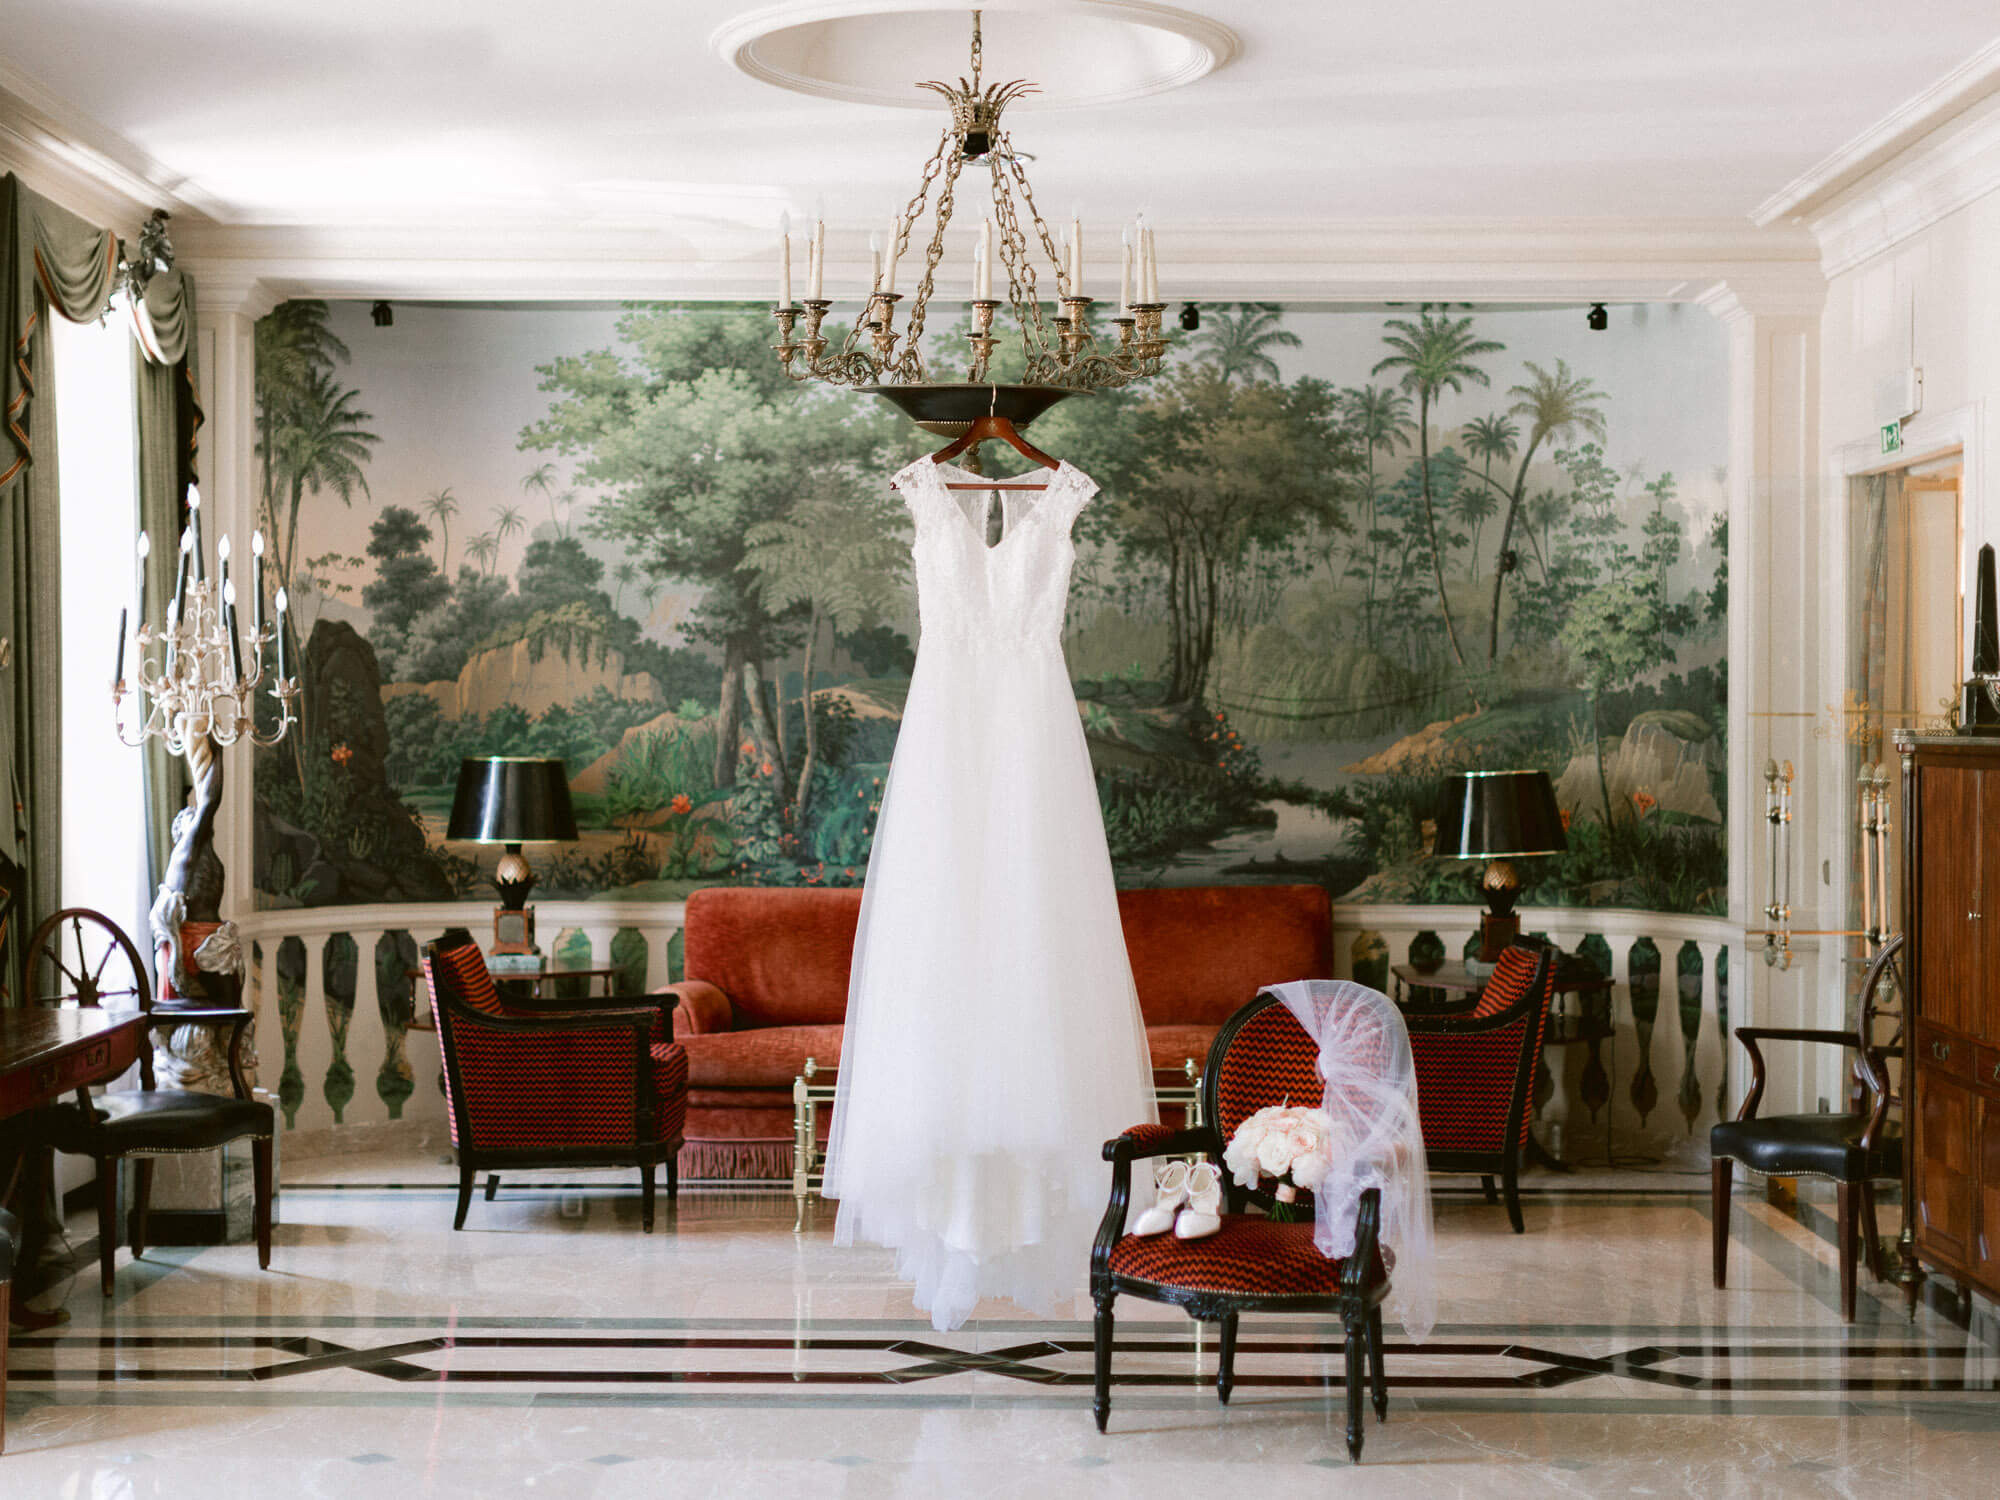 bride's dress hanged on chandelier in Hotel Palacio Estoril by Portugal Wedding Photographer